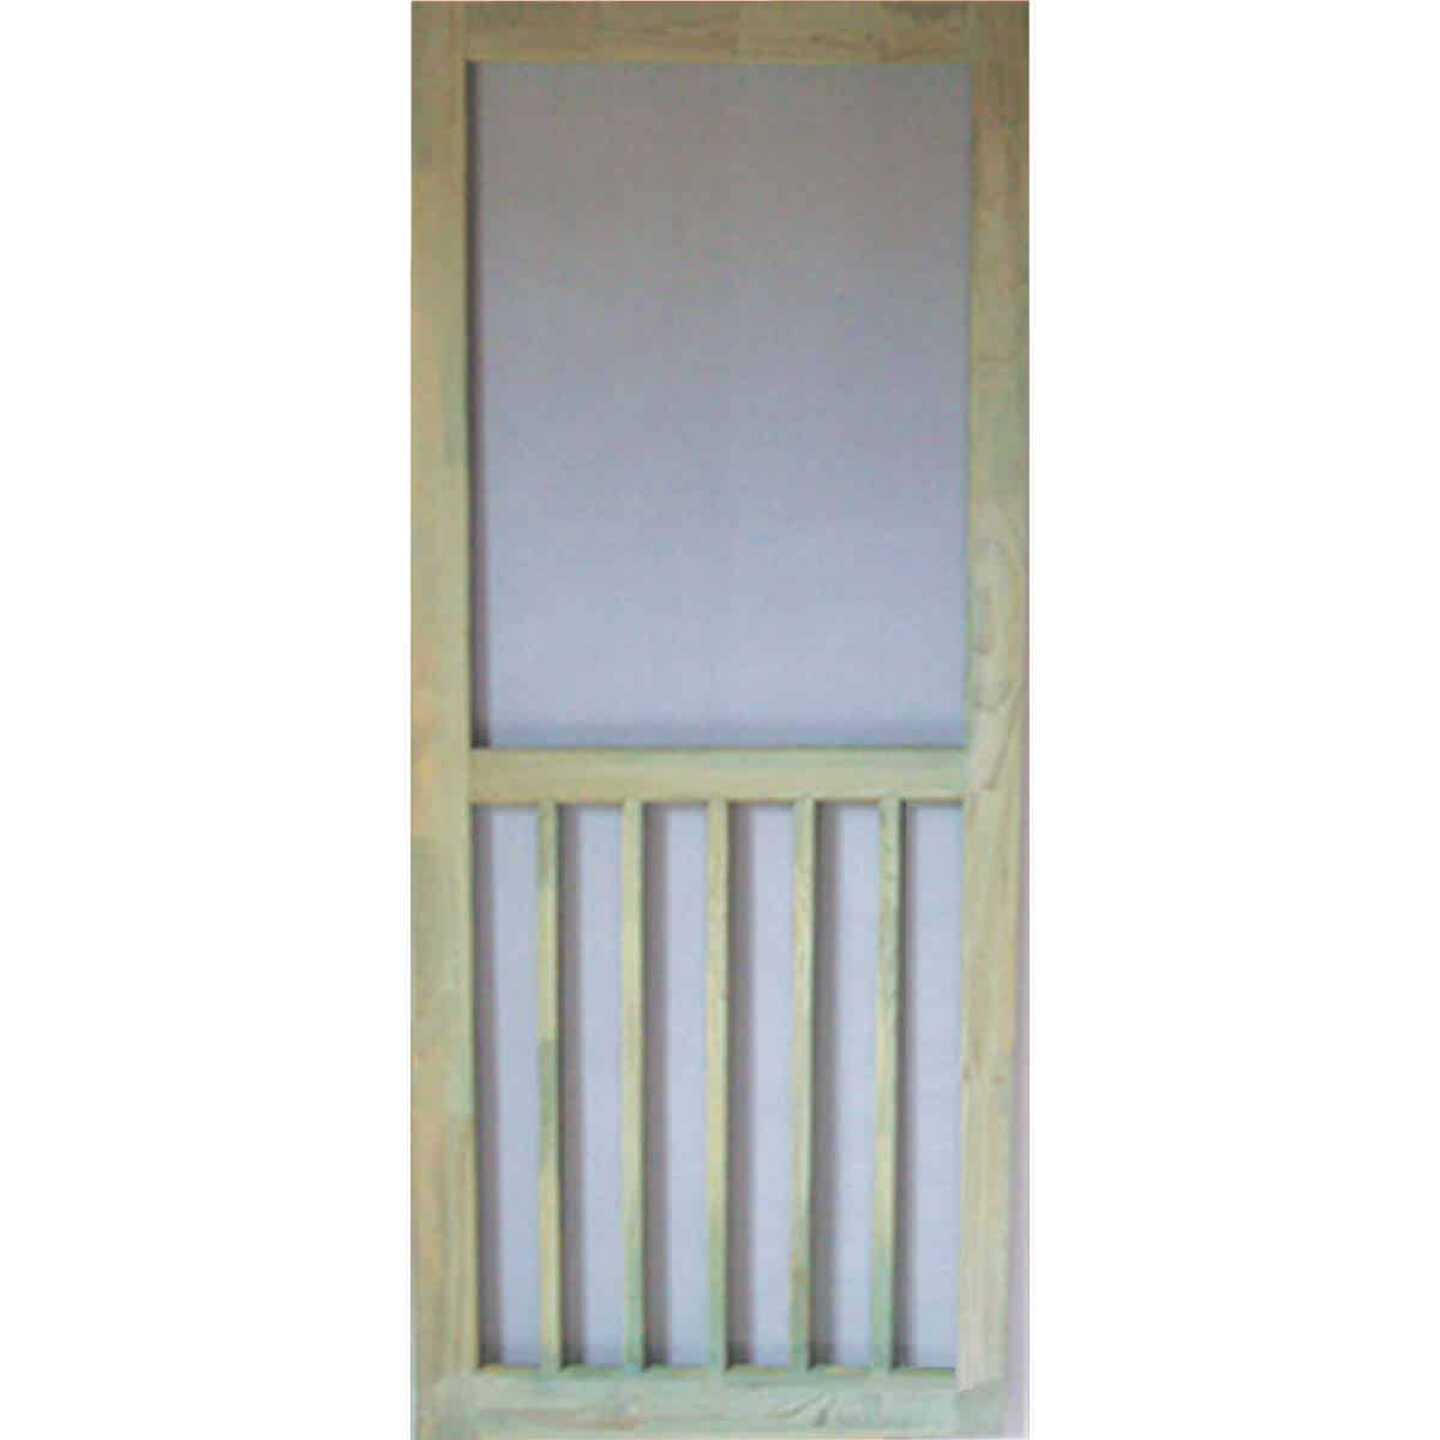 Snavely Kimberly Bay 32 In. W x 80 In. H x 1-1/8 In. Thick ACQ Treated Natural Finger Joint Pine Stiles & Rails 5-Bar Screen Door Image 1